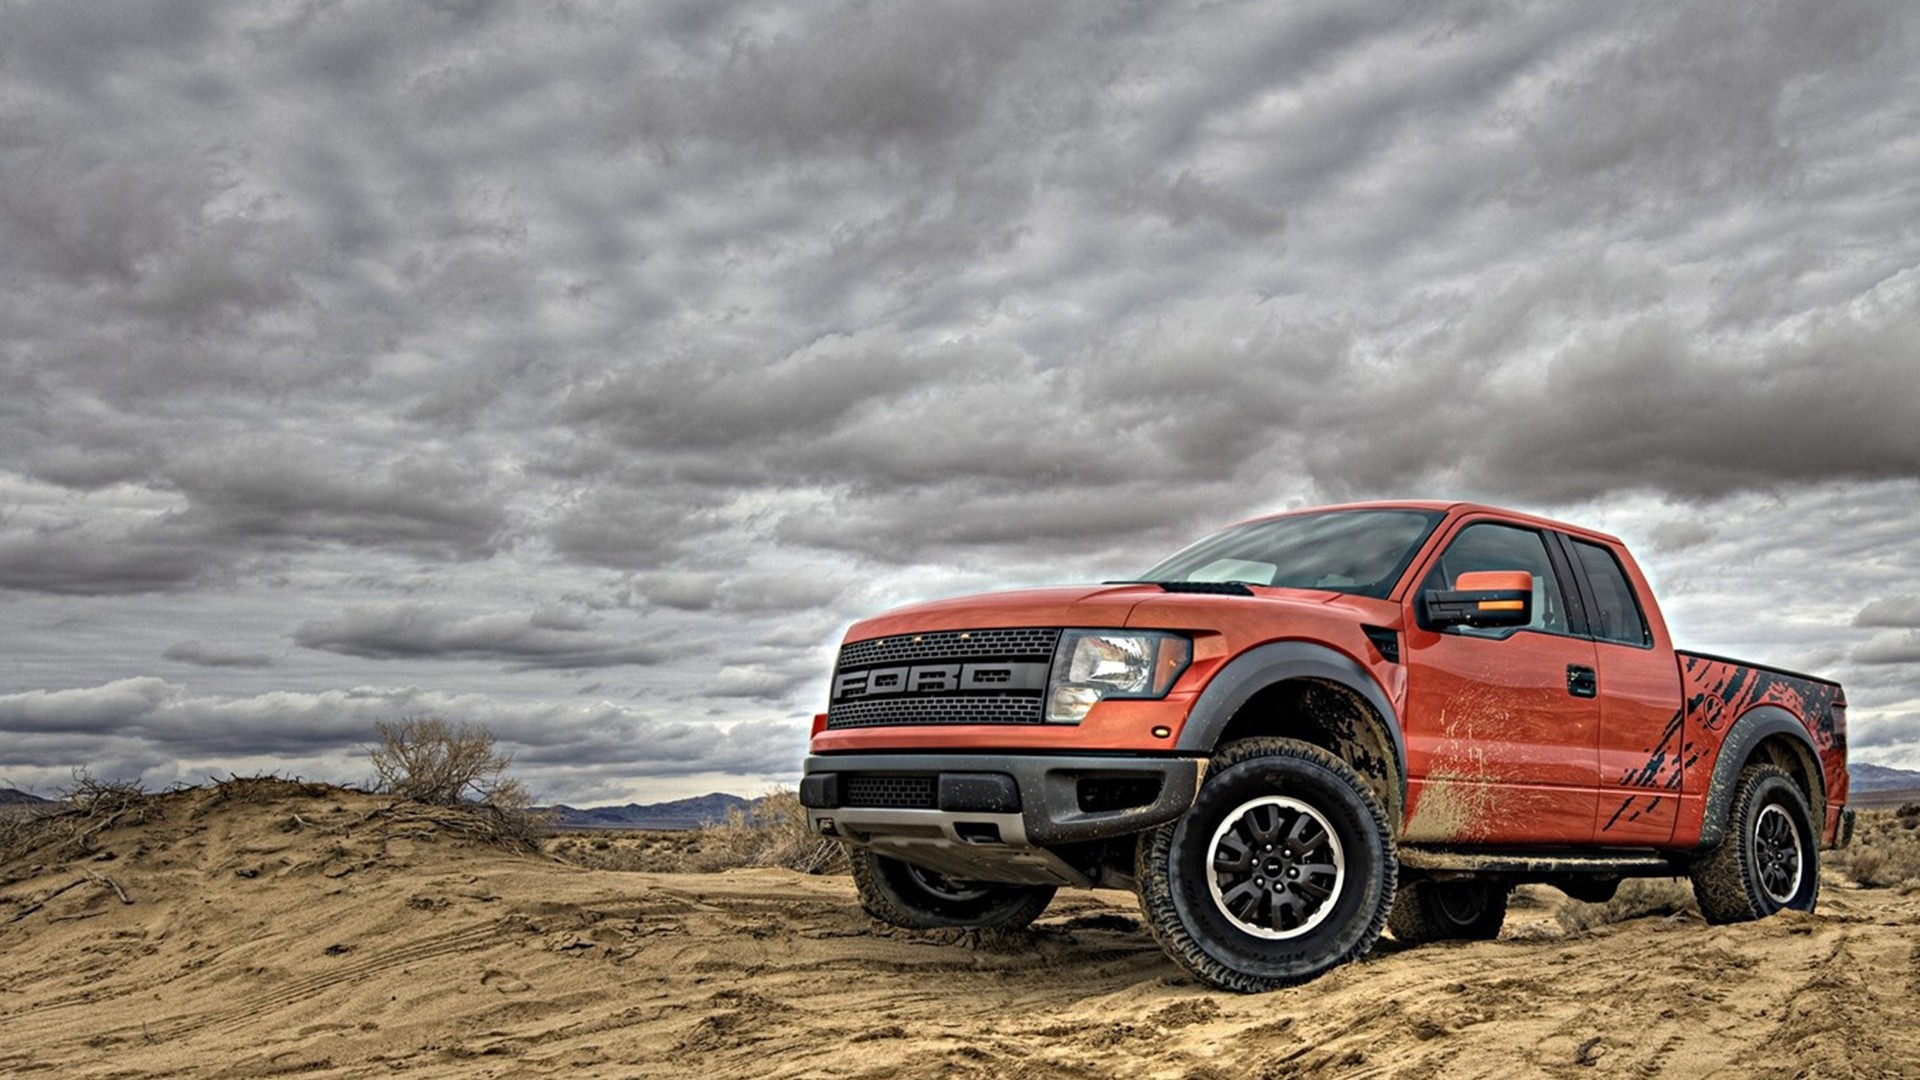 2015 F150 Lifted >> Lifted Truck Wallpaper HD (49+ images)